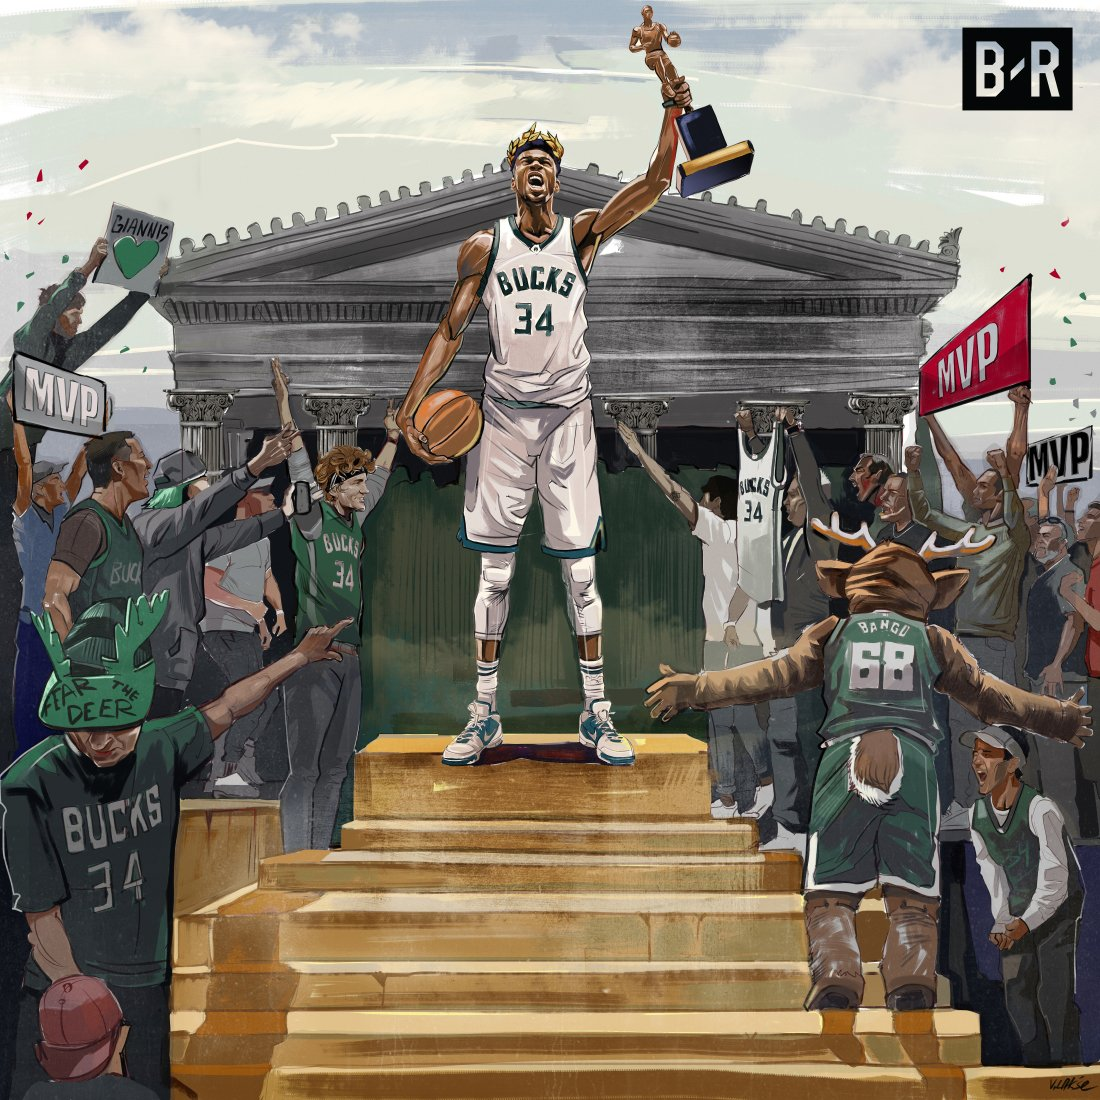 Your 2019 NBA MVP: Giannis Antetokounmpo 😤